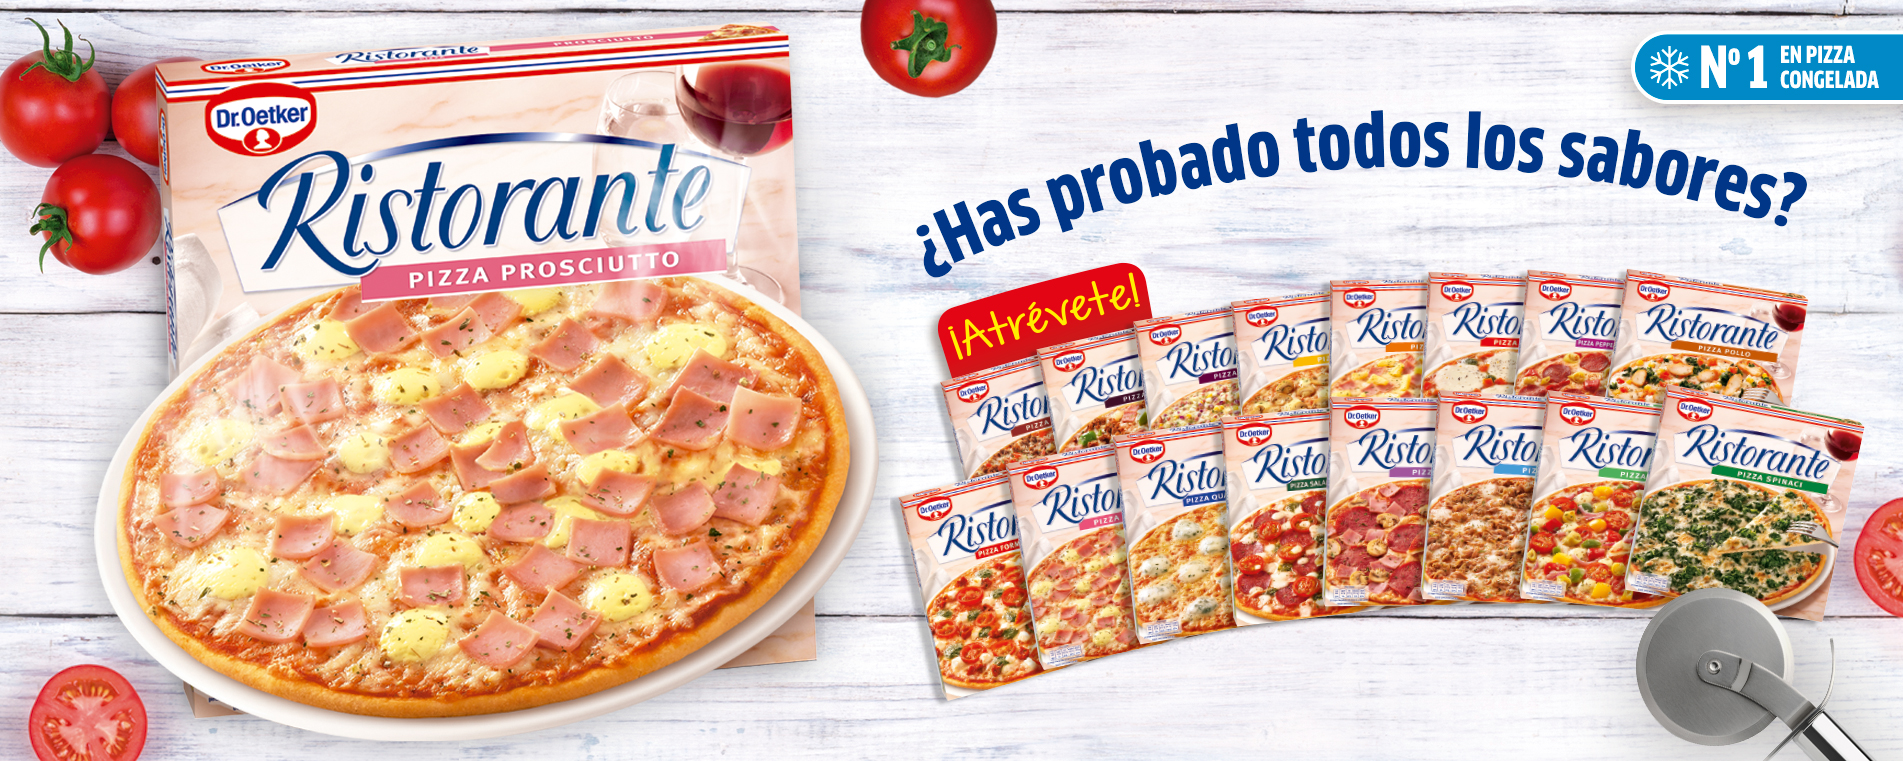 diapo-principal-pizza